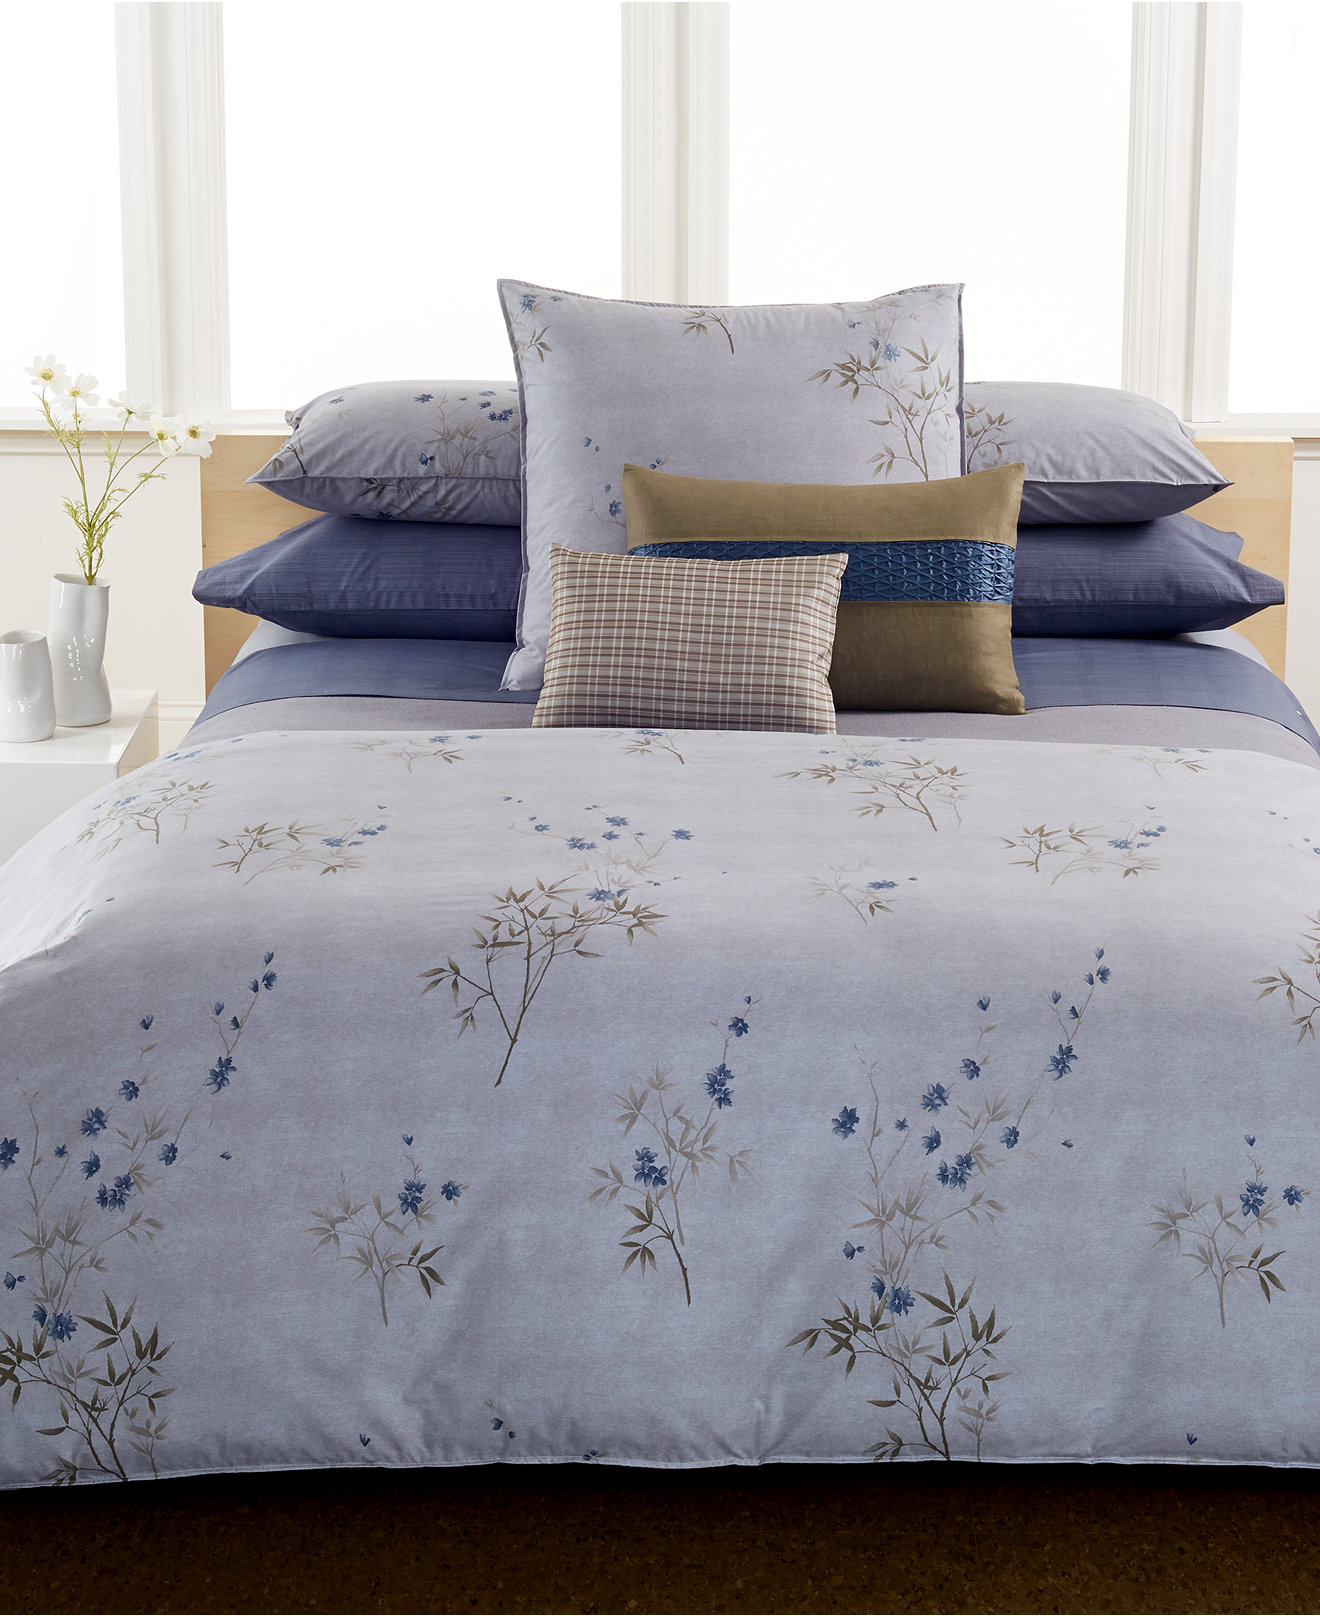 Discount Duvet Covers Queen | King Duvet Covers | Queen Duvet Covers